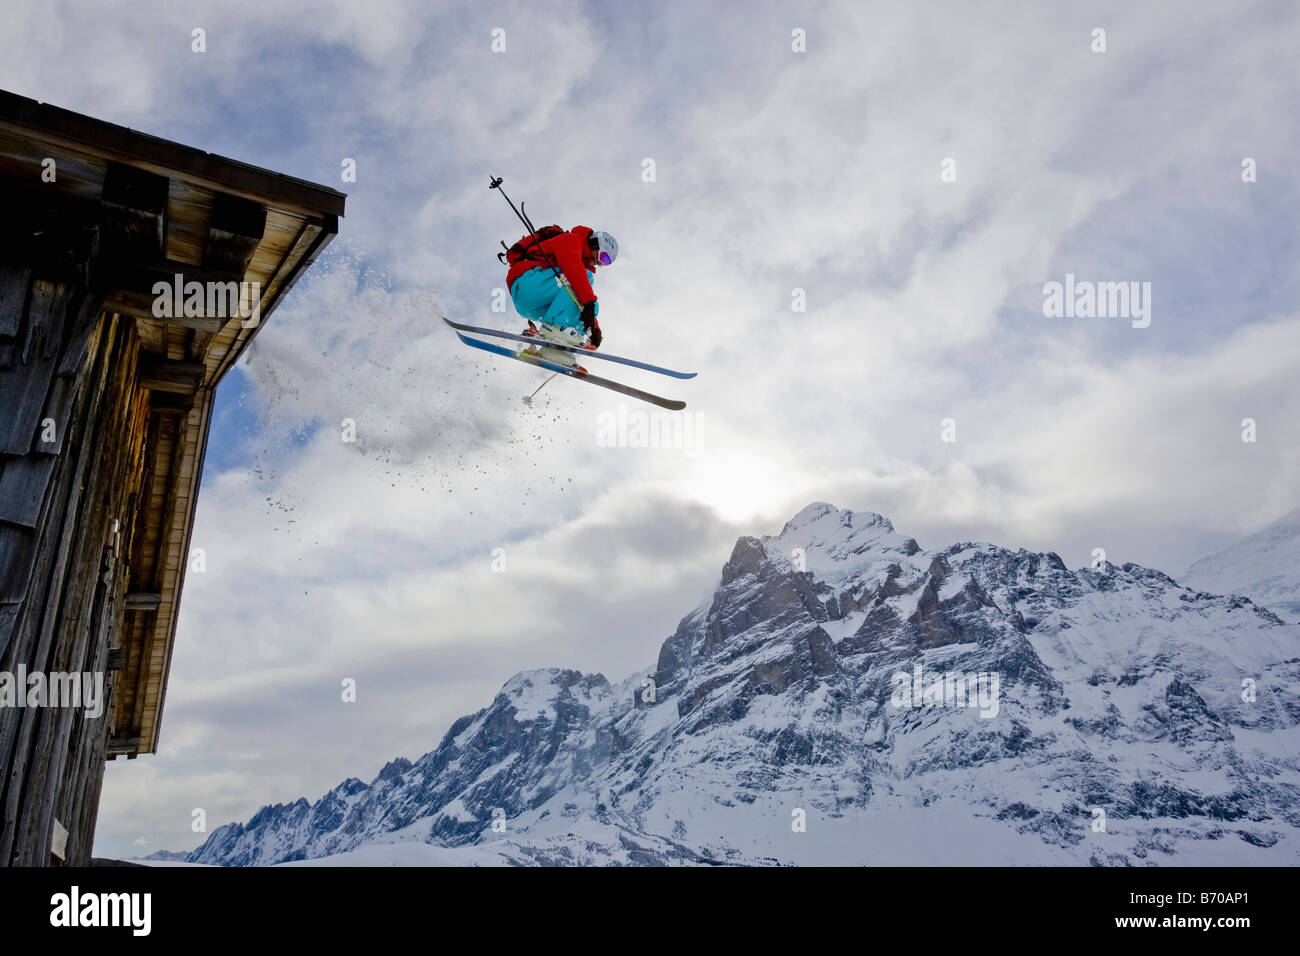 A young man skis off the roof of an alpine hut in Grindalwald, Switzerland. - Stock Image